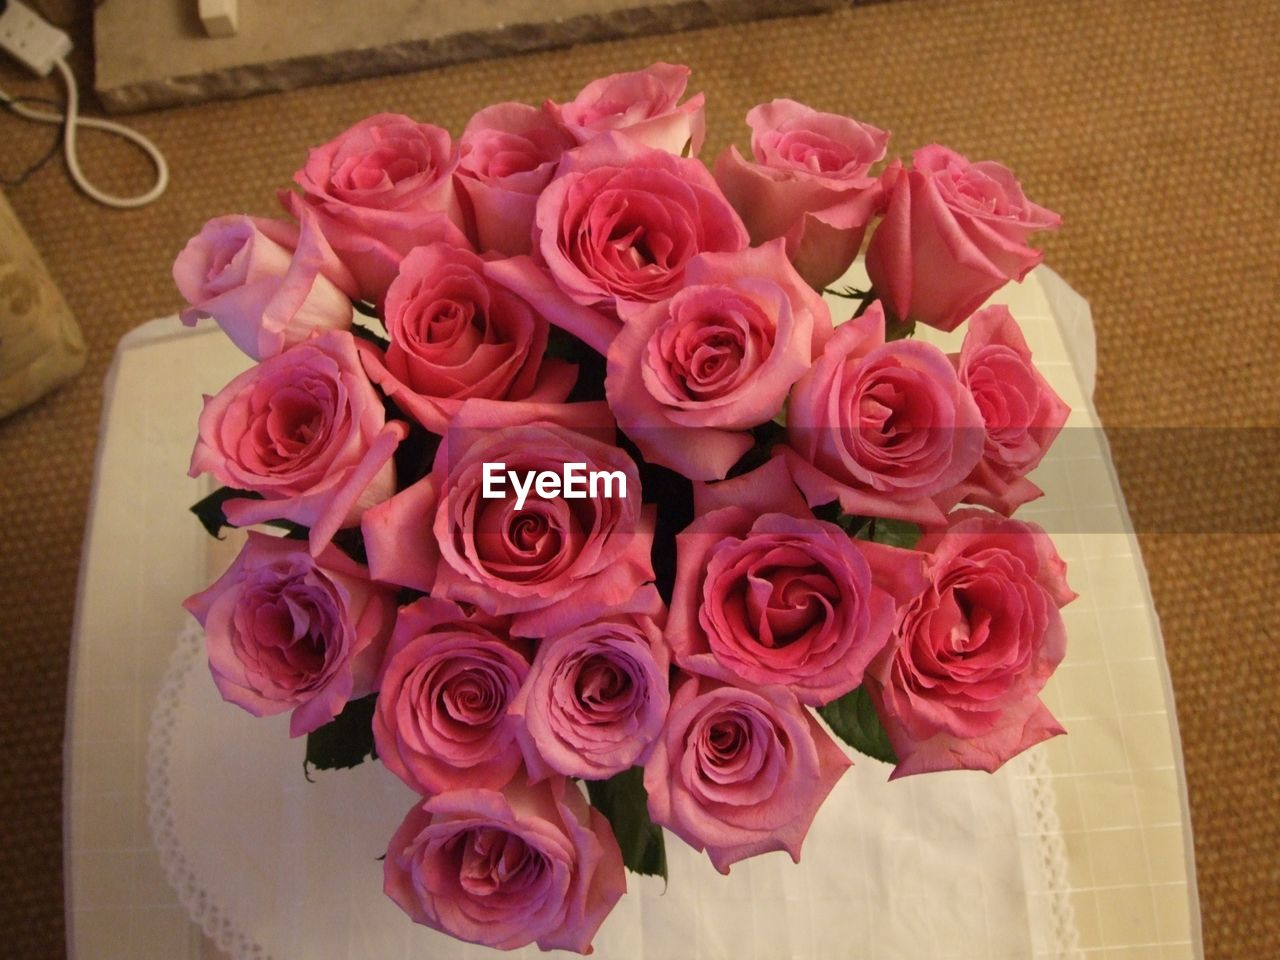 flower, rose - flower, pink color, petal, fragility, indoors, no people, high angle view, freshness, flower head, bouquet, table, close-up, nature, beauty in nature, day, florist